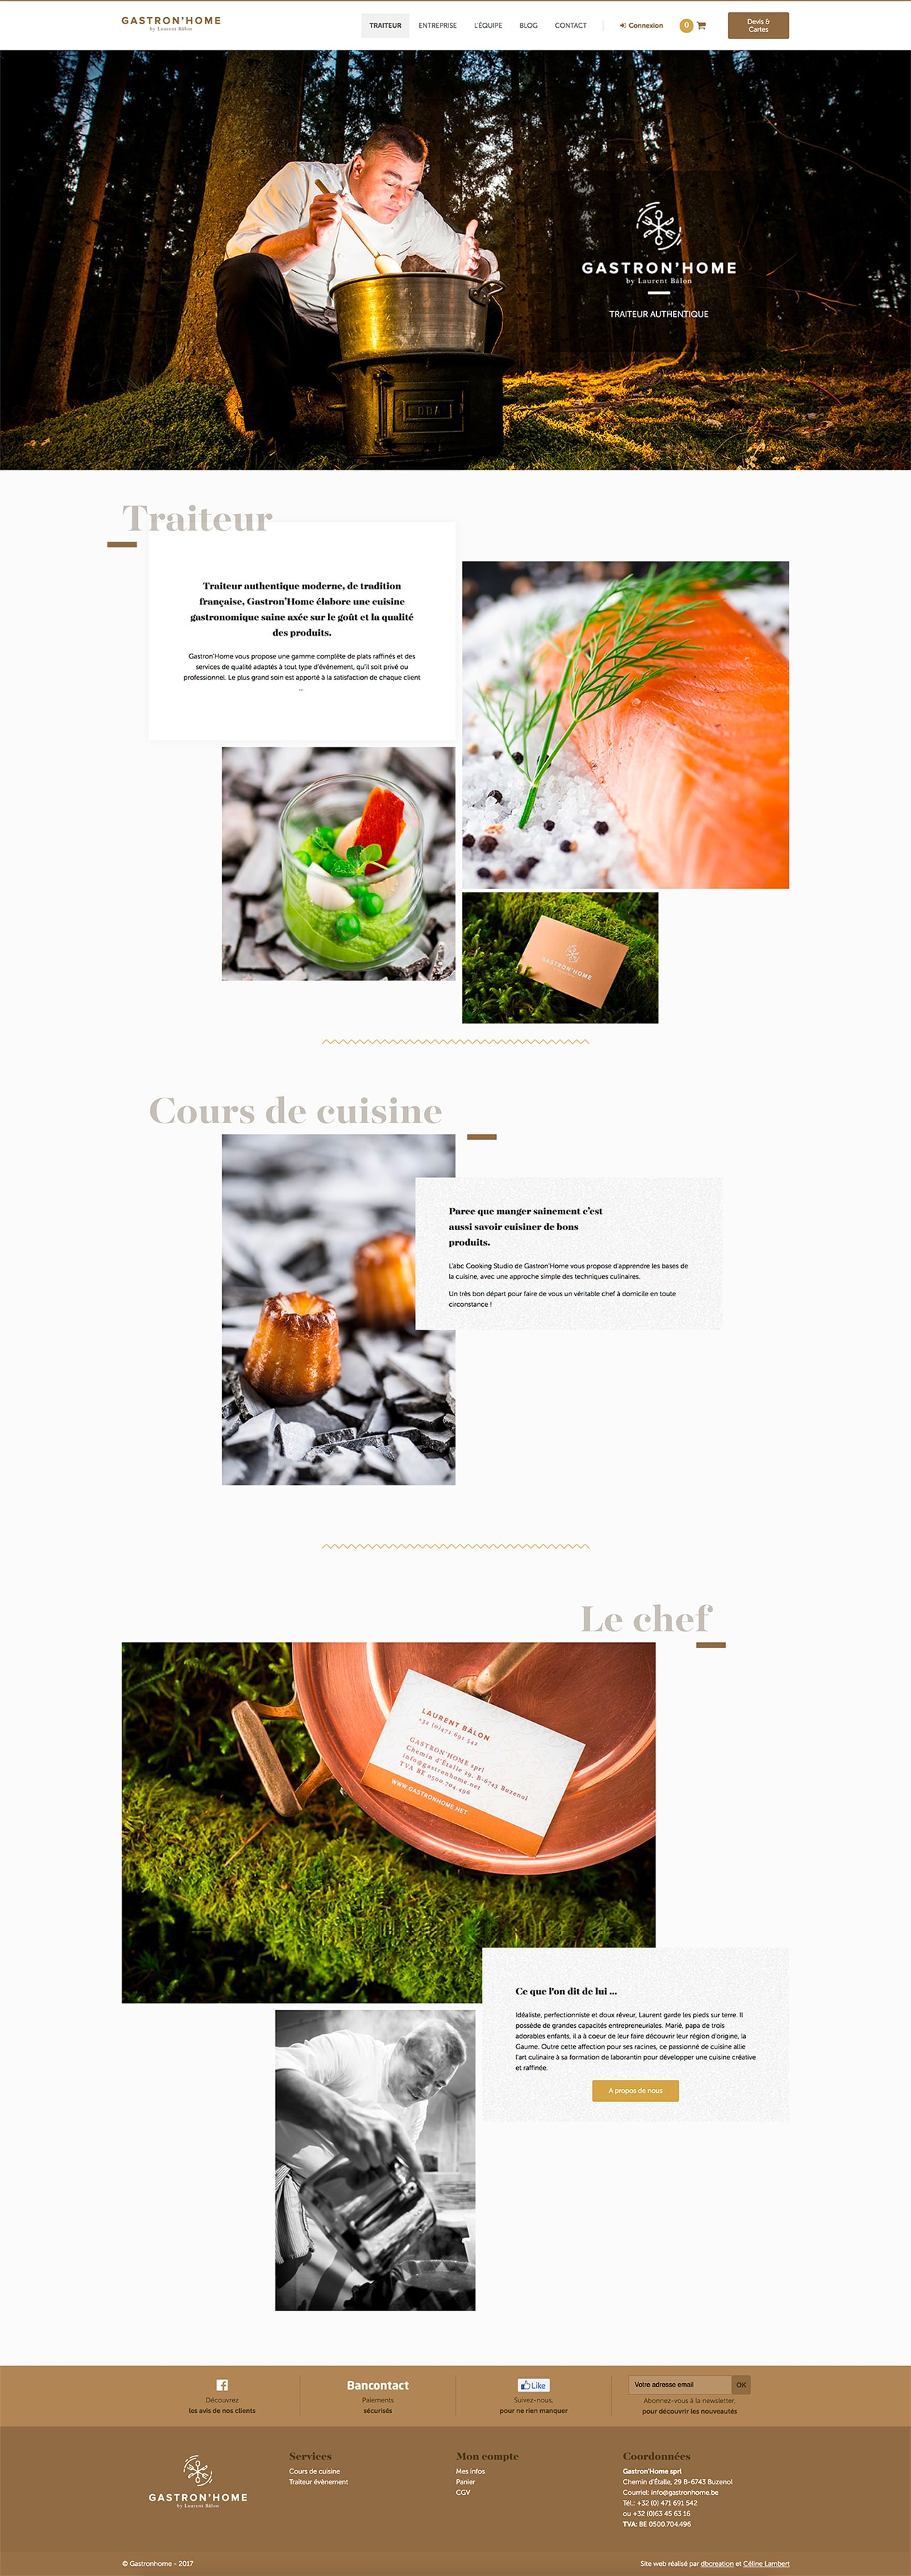 Homepage gastronhome.be